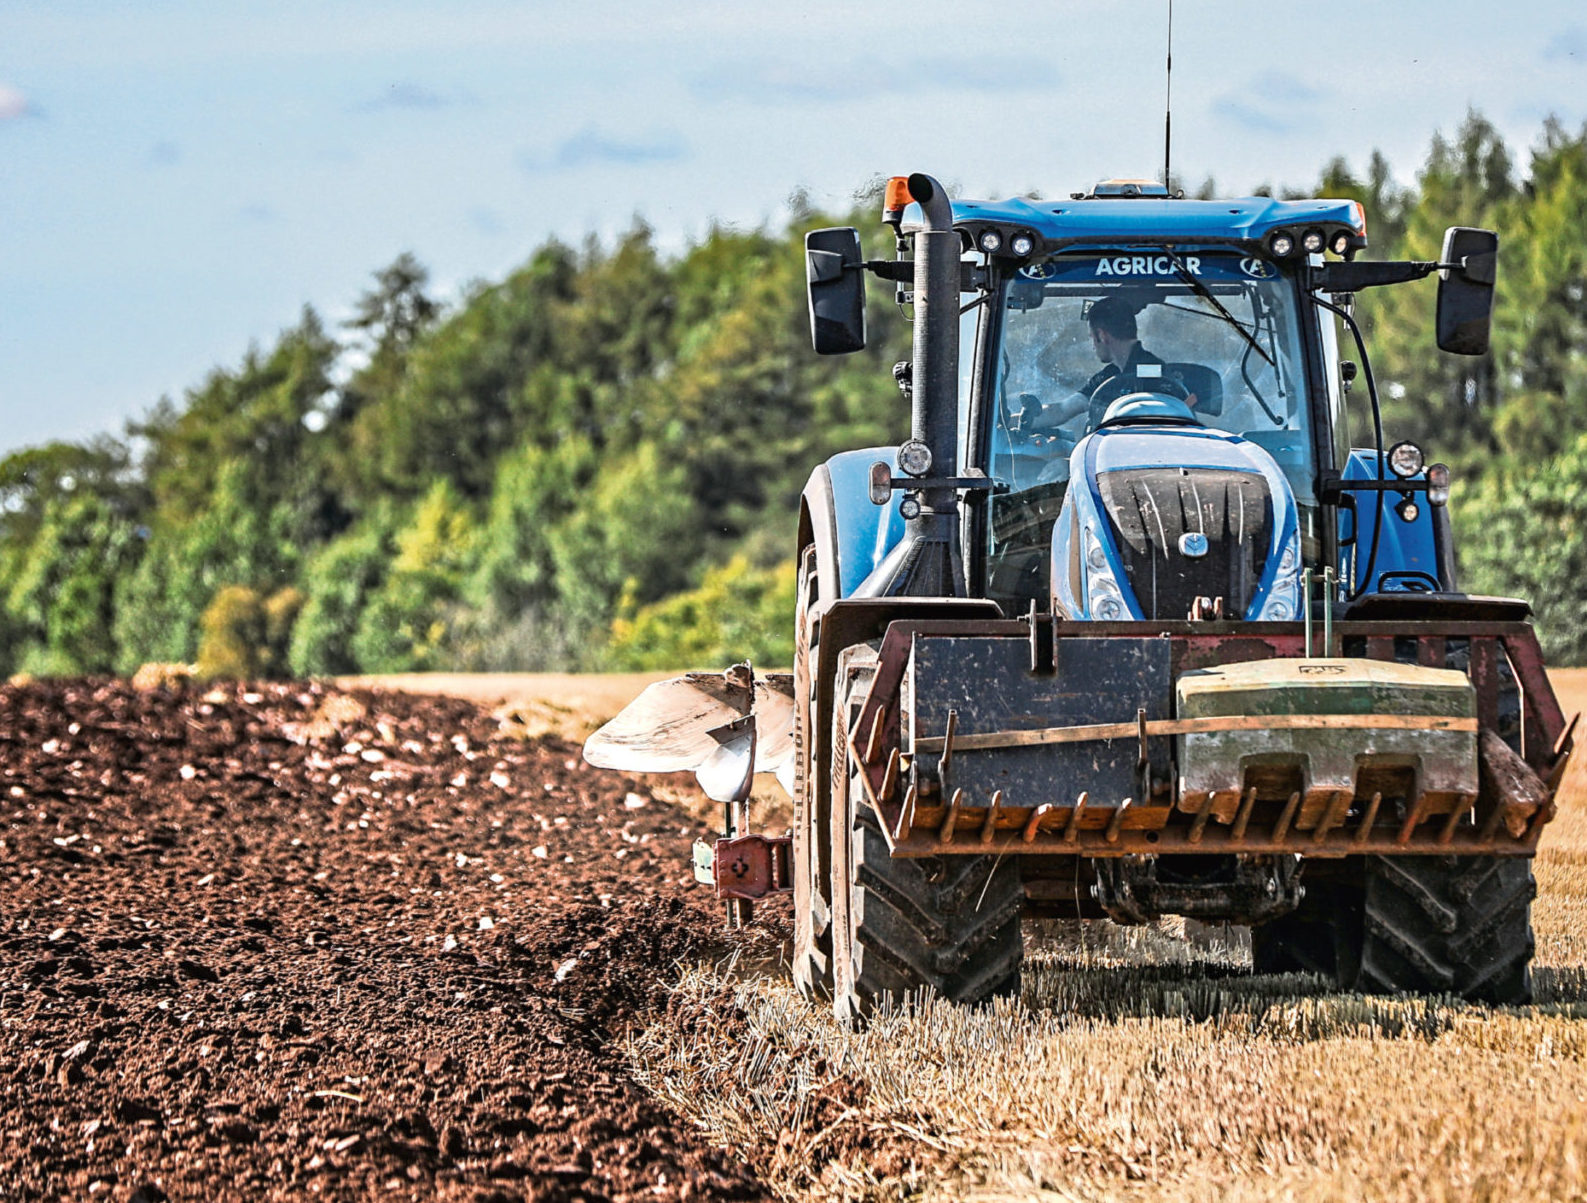 Soil management can be key to a farm's long-term viability.